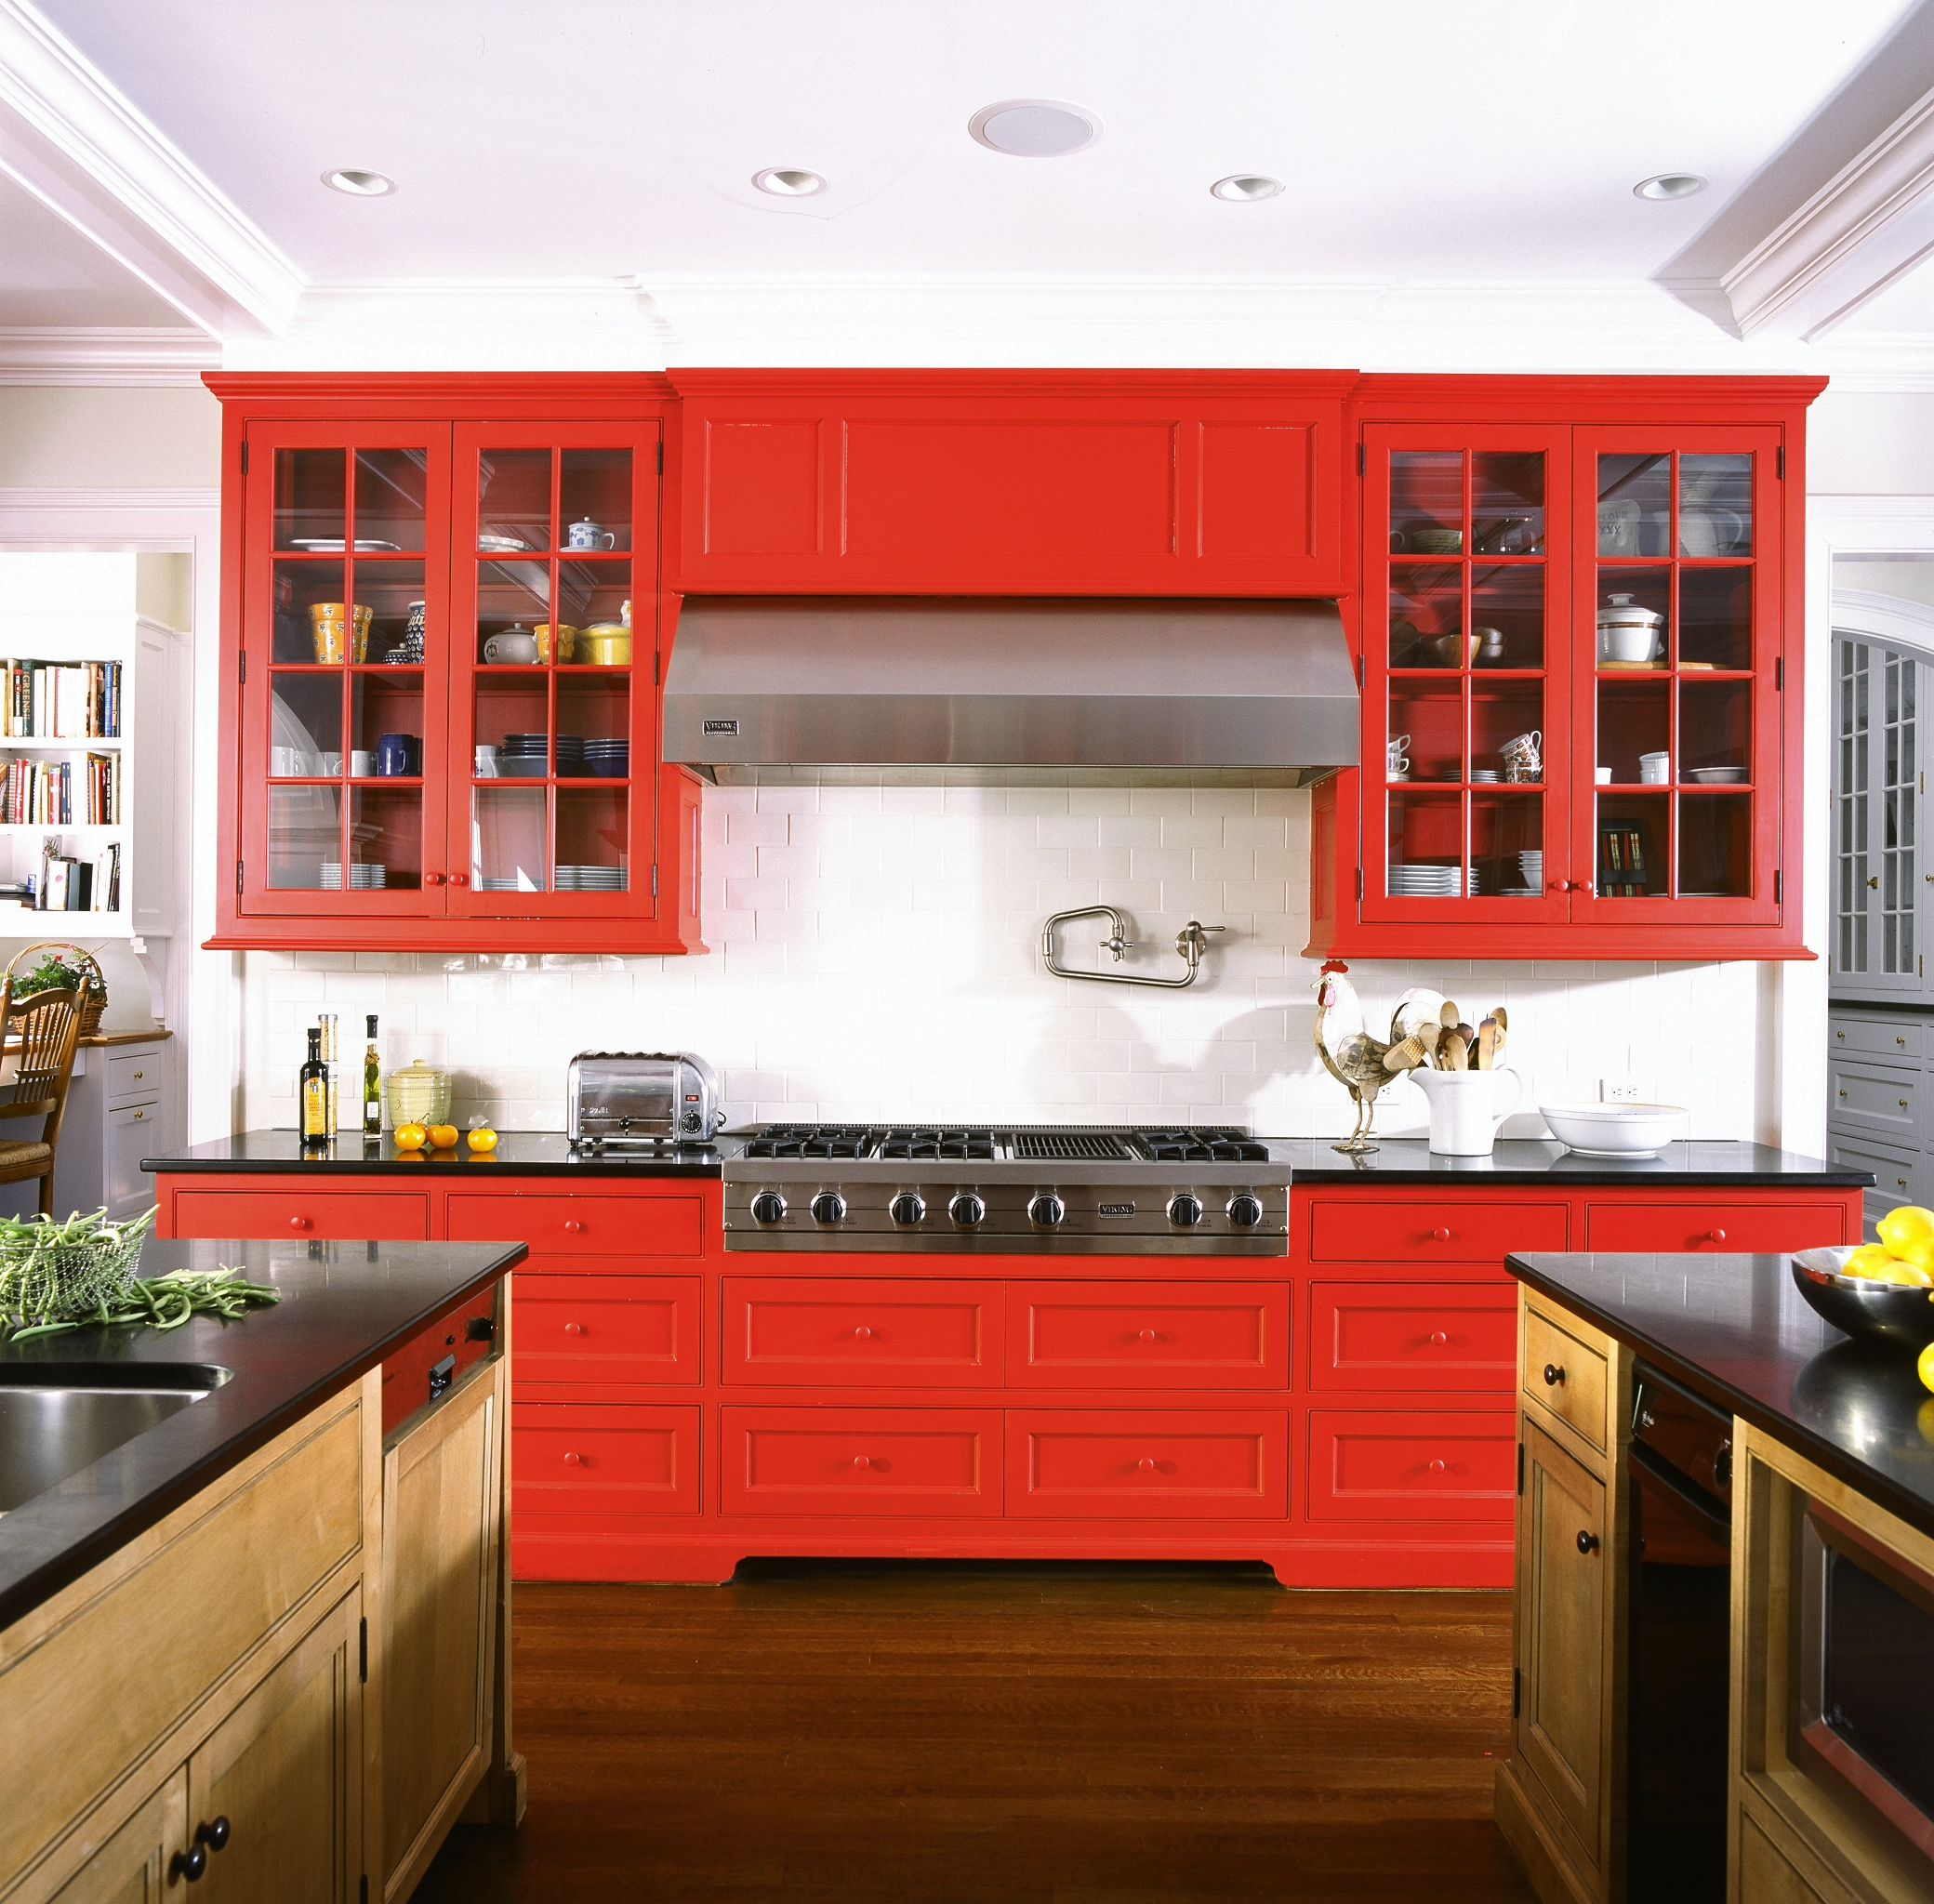 New Canaan Ct Brooks And Falotico Associates Fairfield County Architects Contemporary Kitchen Design Kitchen Design Red Cabinets